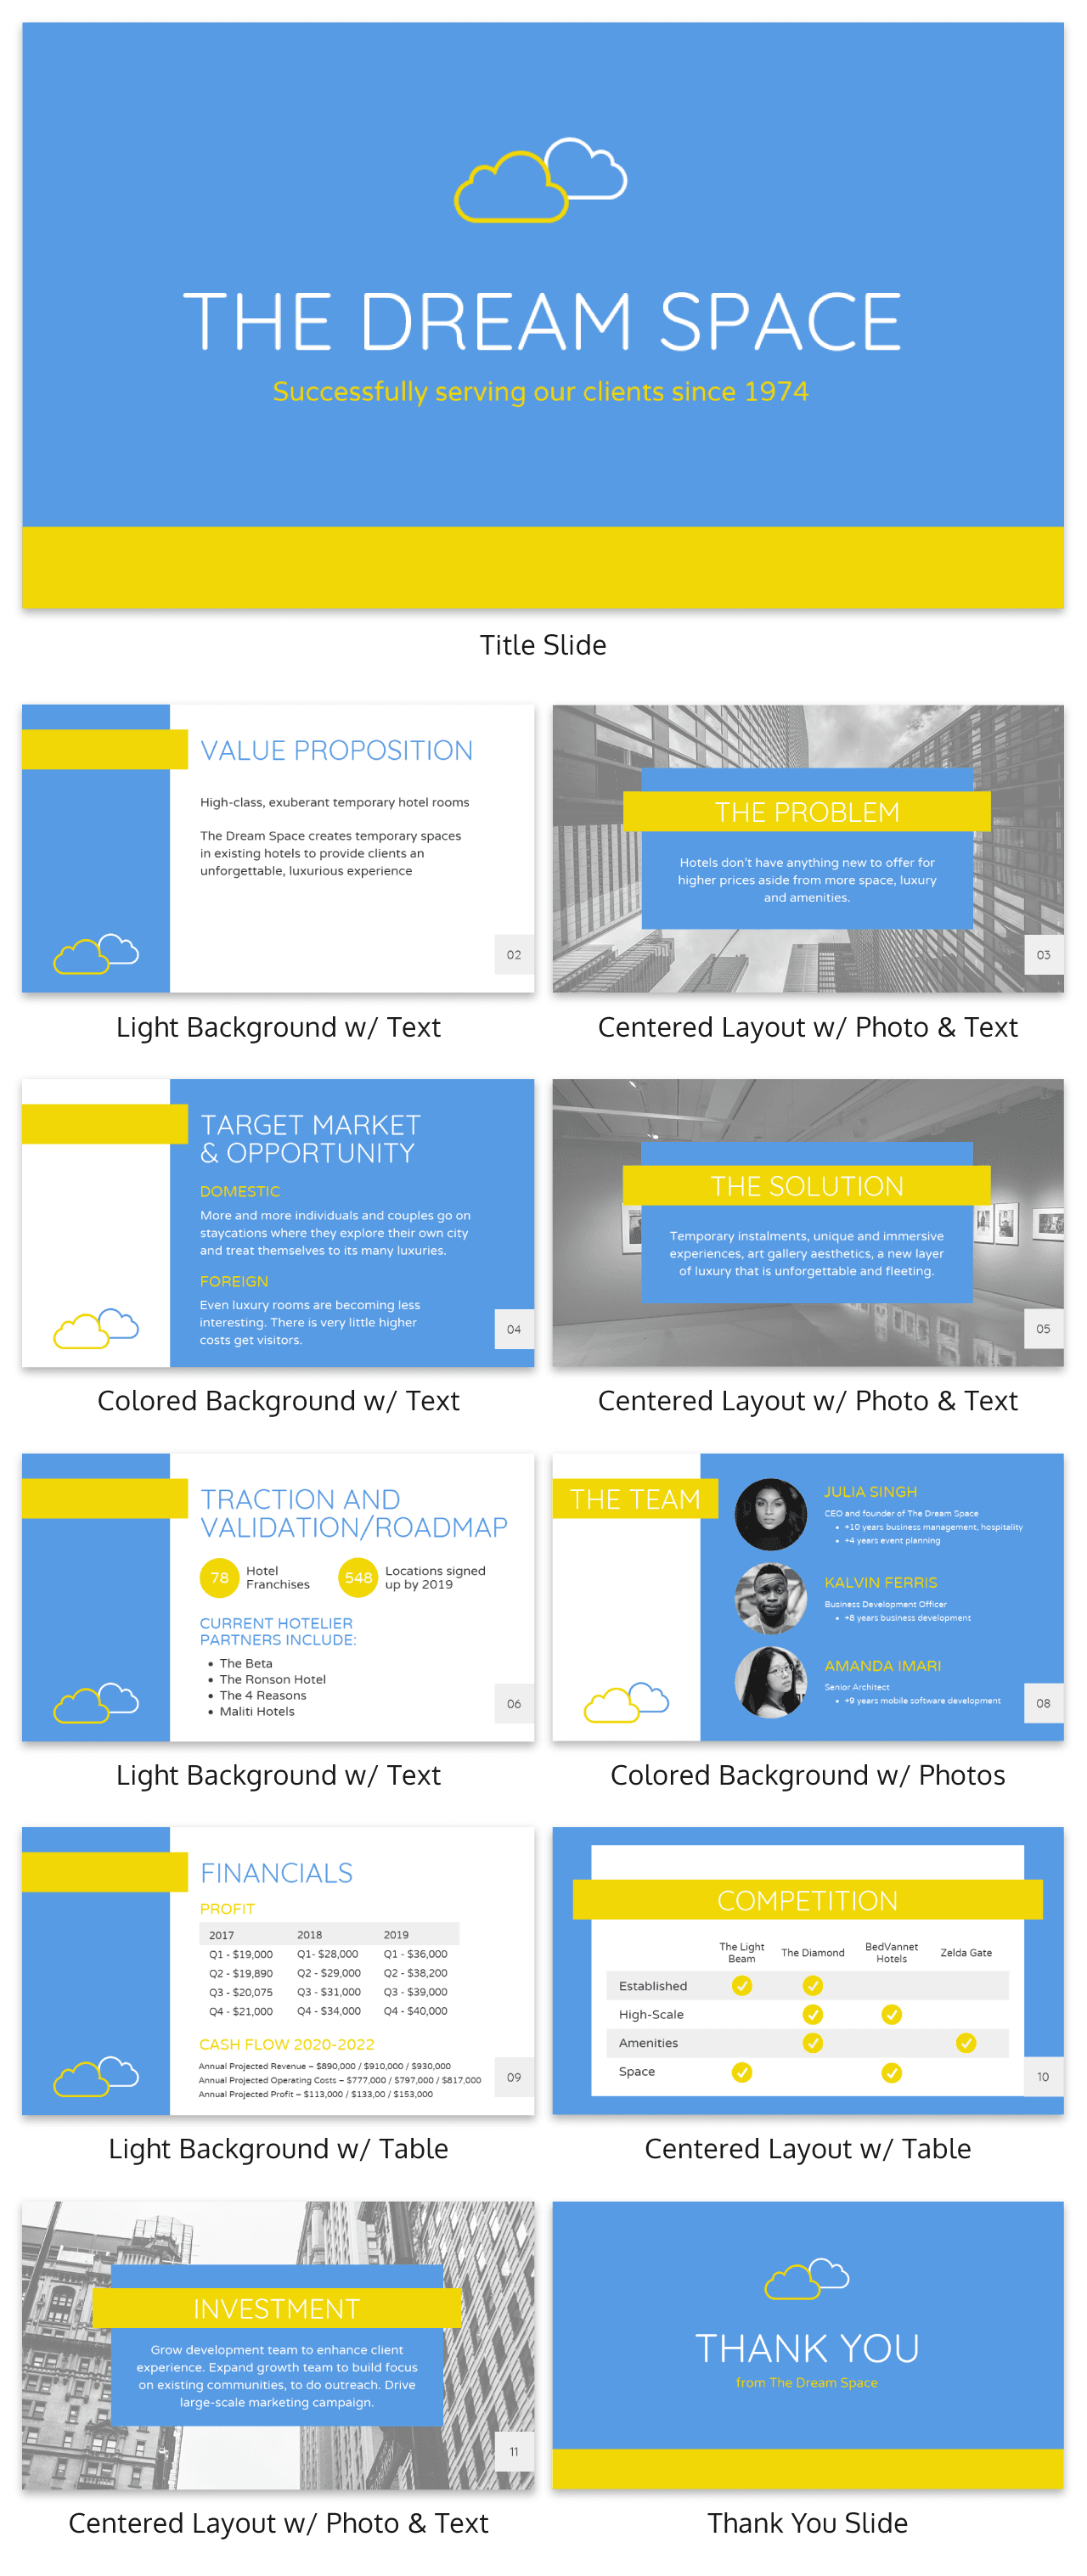 12 business pitch deck templates and design best practices to business pitch deck templates wajeb Choice Image